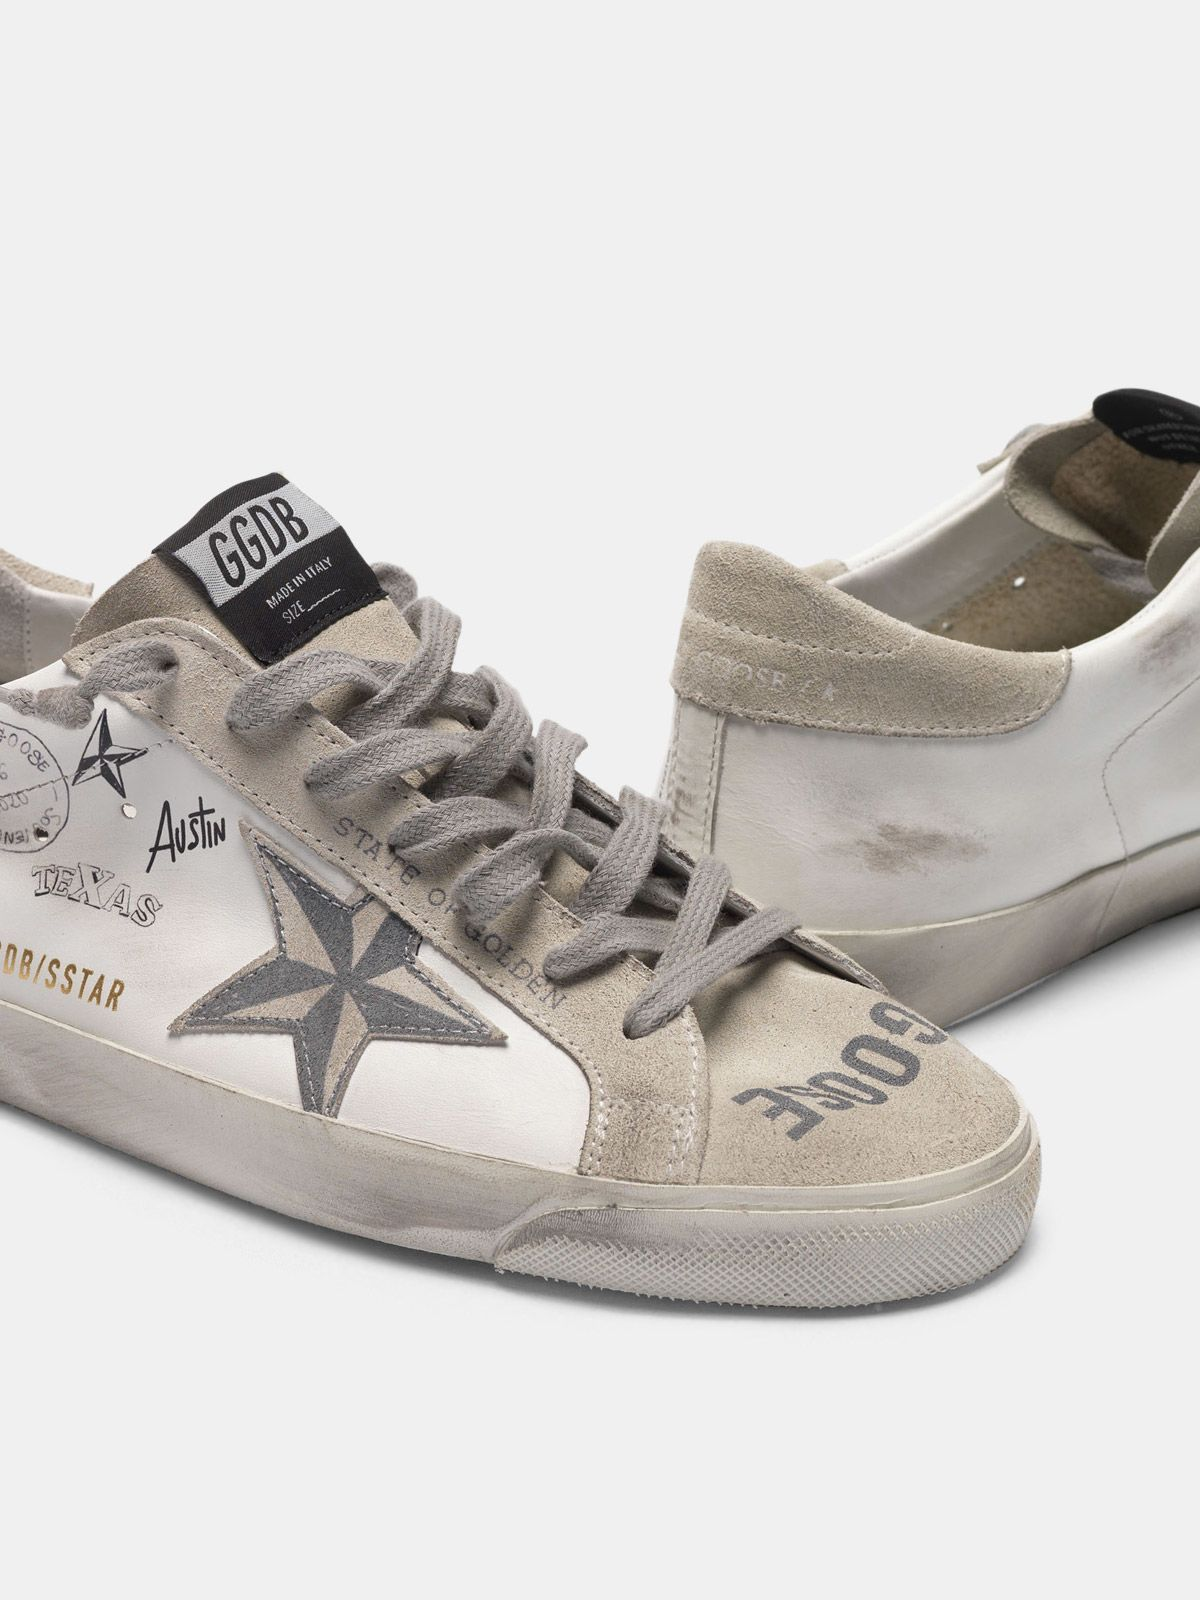 Golden Goose - Super-Star sneakers with Texas graffiti in